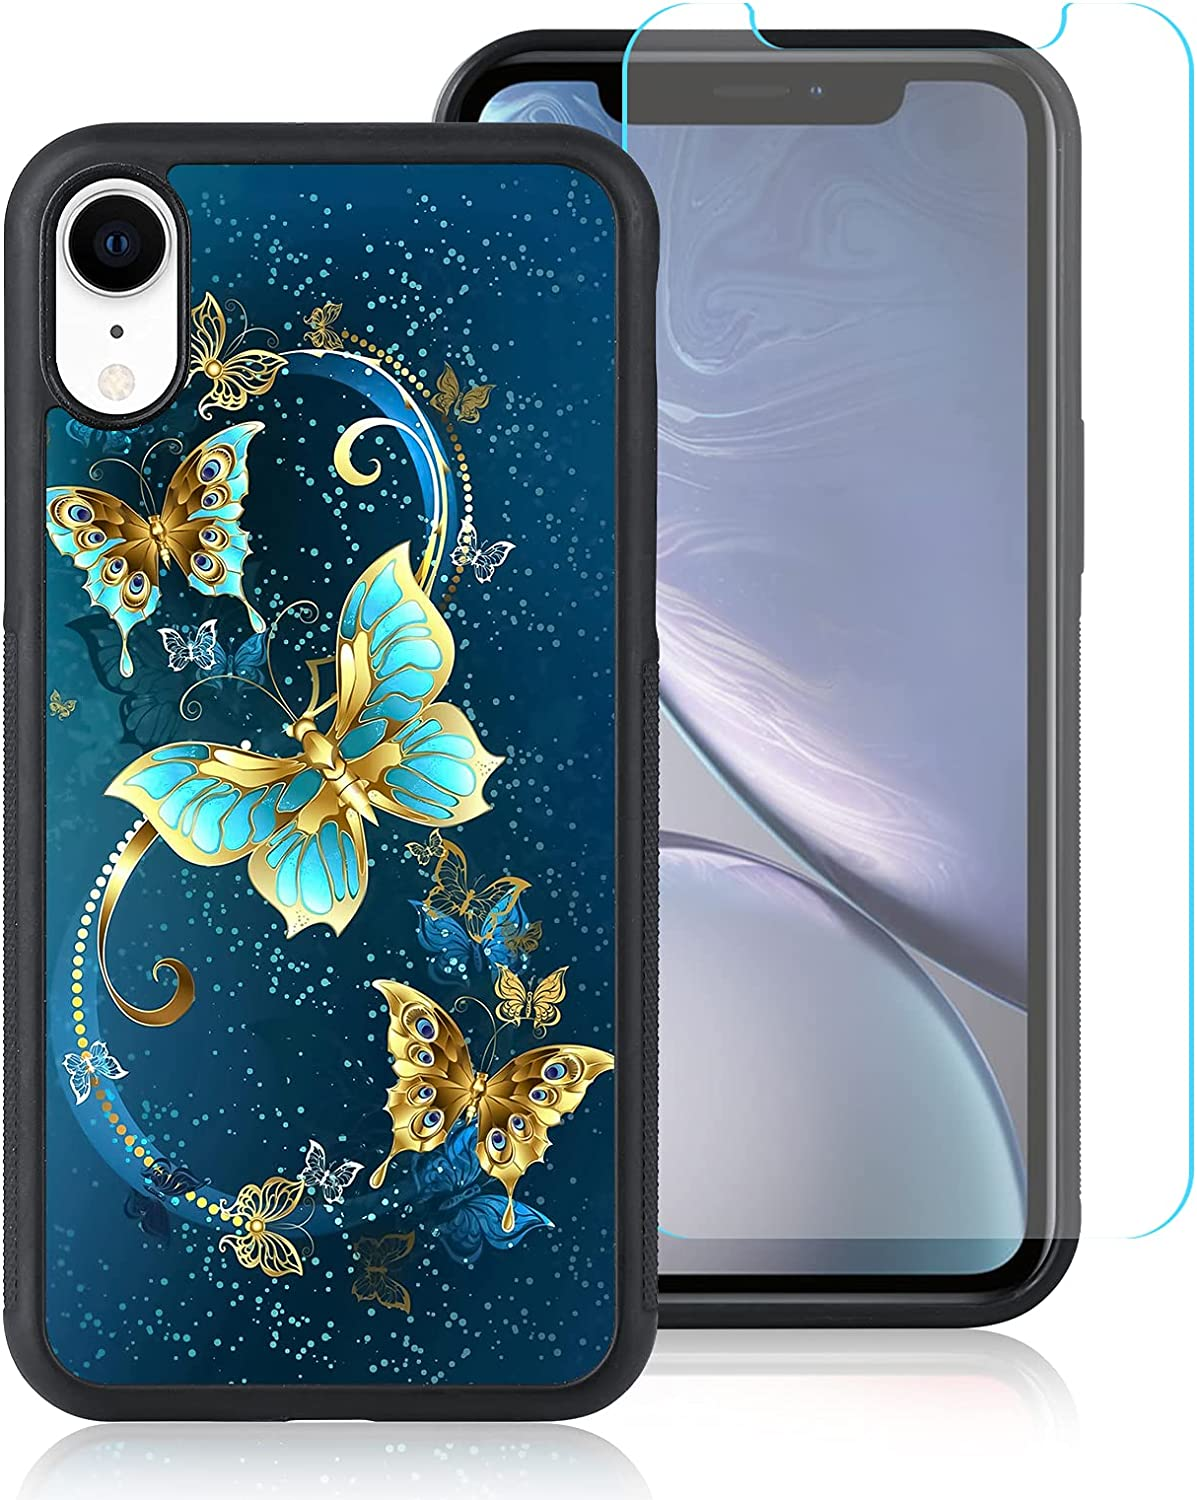 Compatible with iPhone XR 6.1 inch Case, [Built in Screen Protector],Cute Blue Butterfly Design Hard PC Back Anti Slip Shockproof Protective Case for iPhone XR